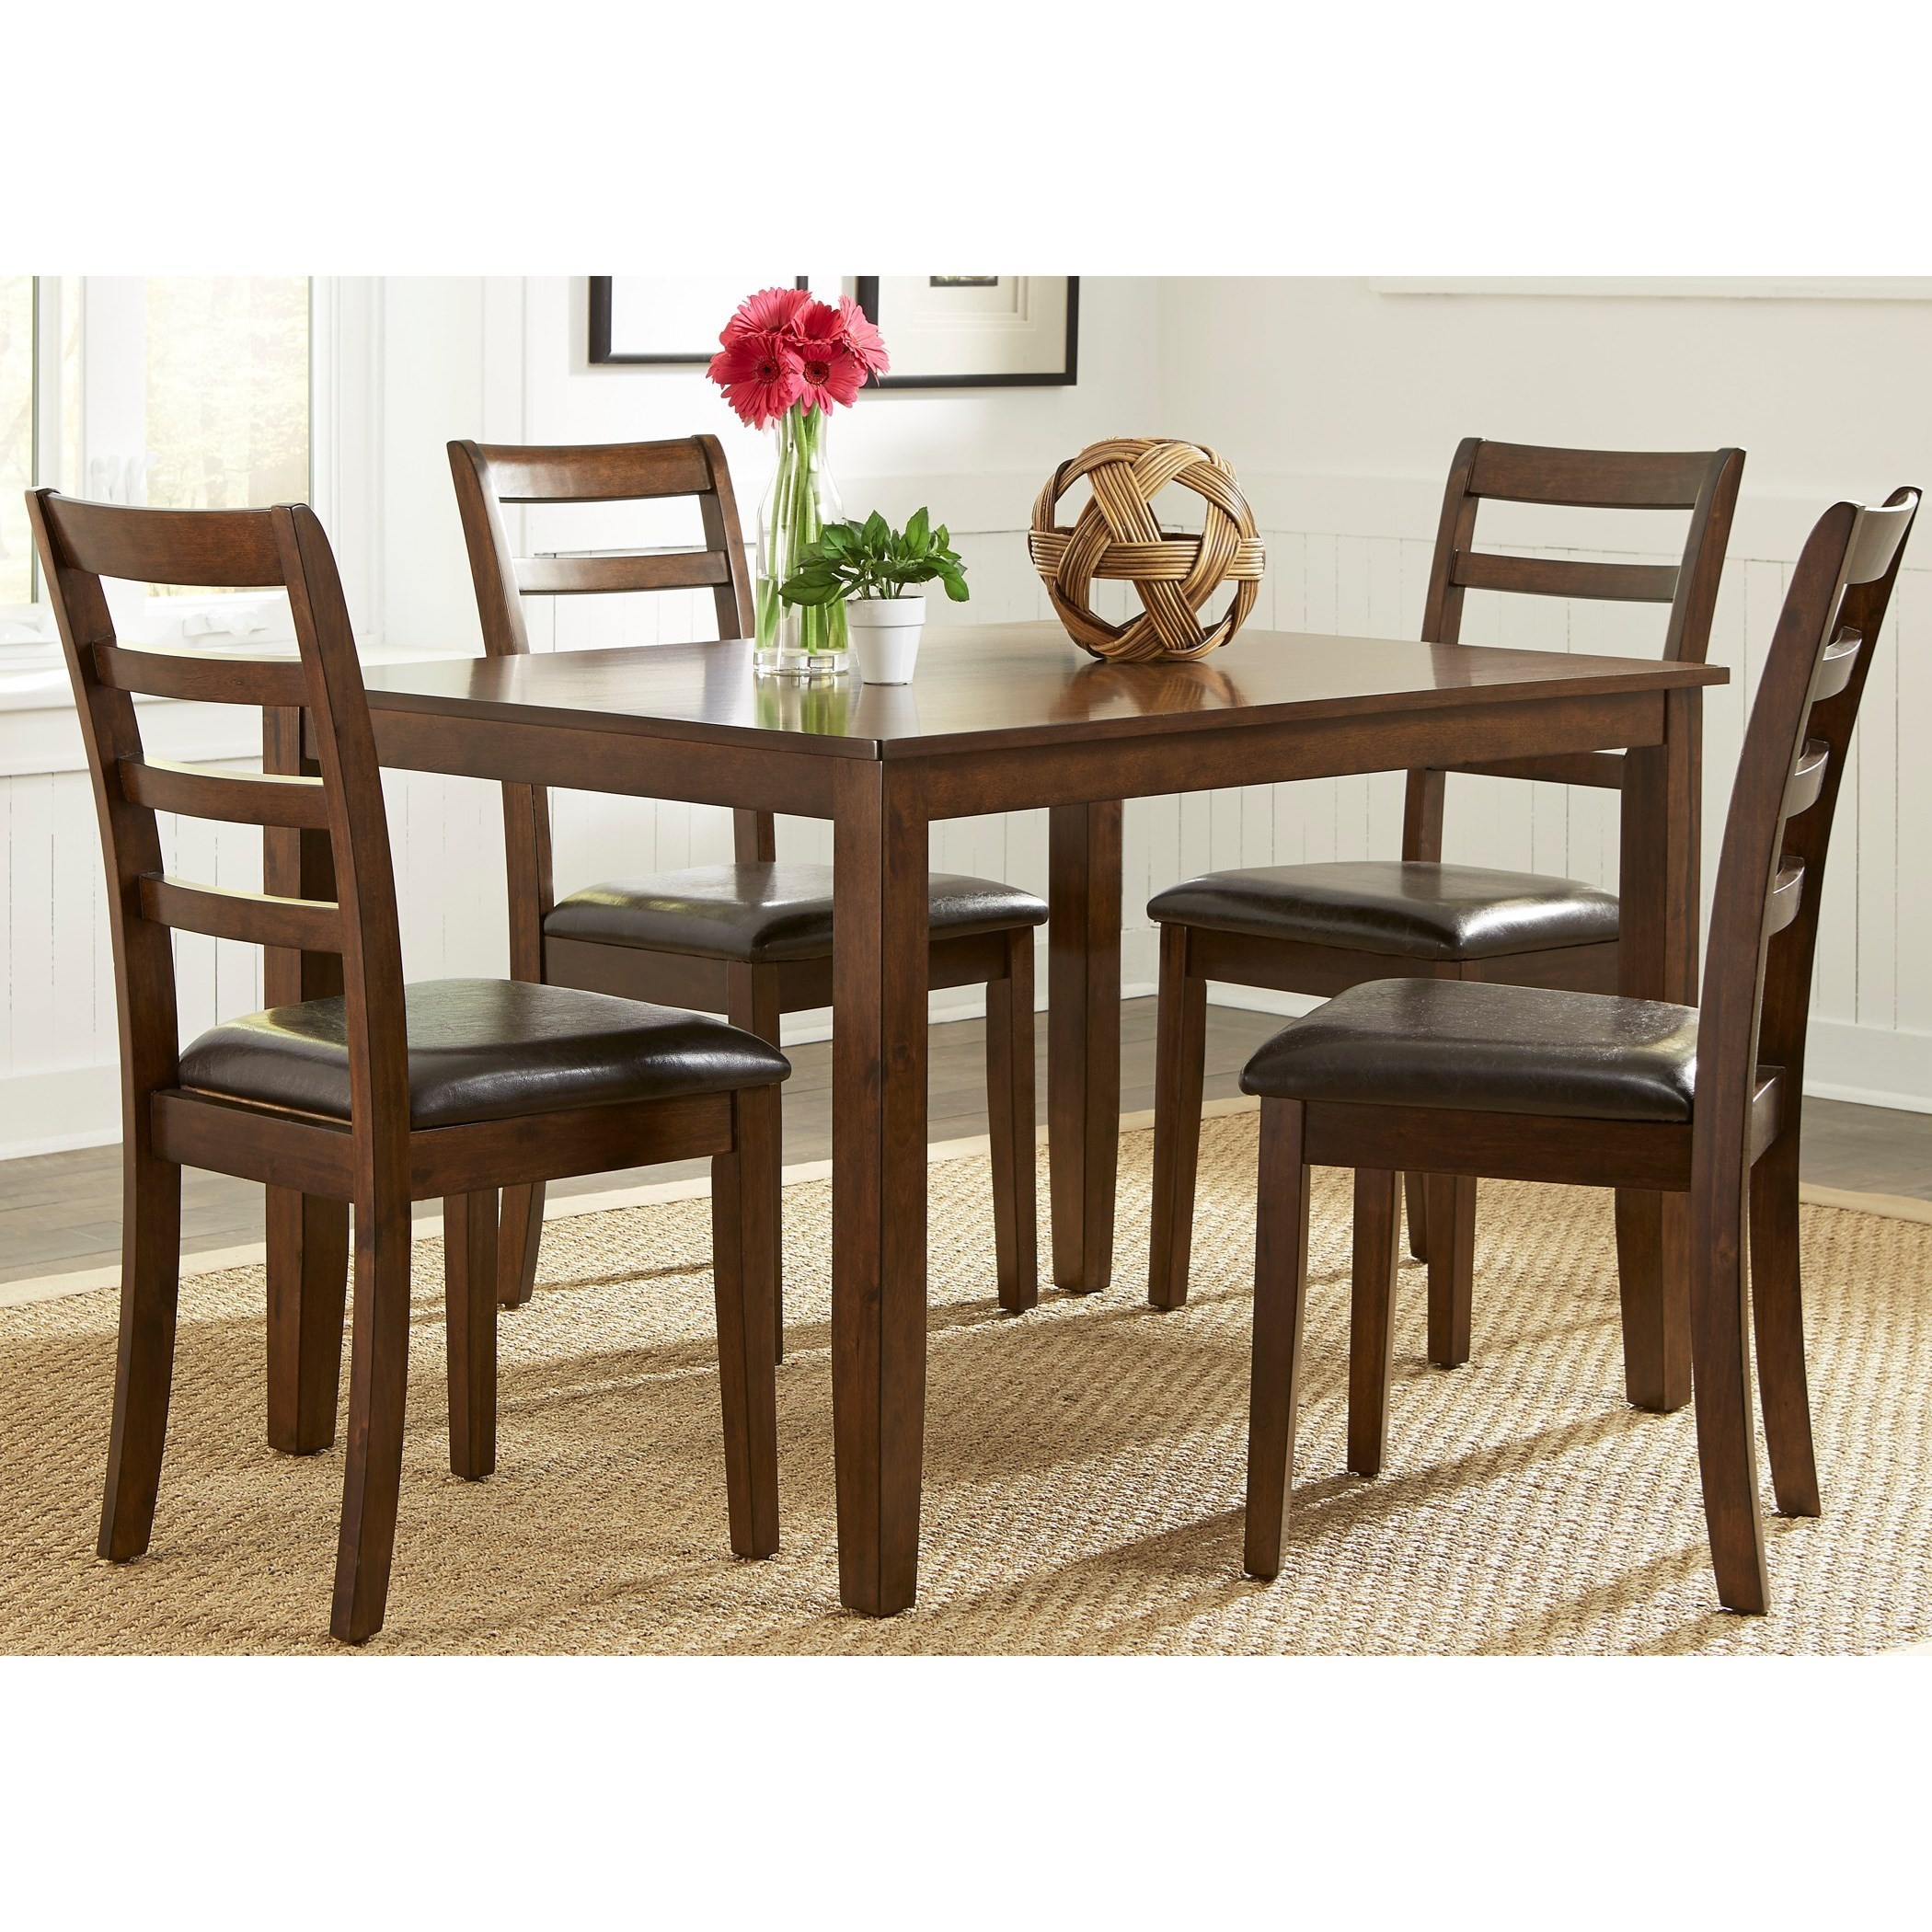 Elegant Bradshaw Casual Dining 5 Piece Rectangular Leg Table Set By Liberty  Furniture